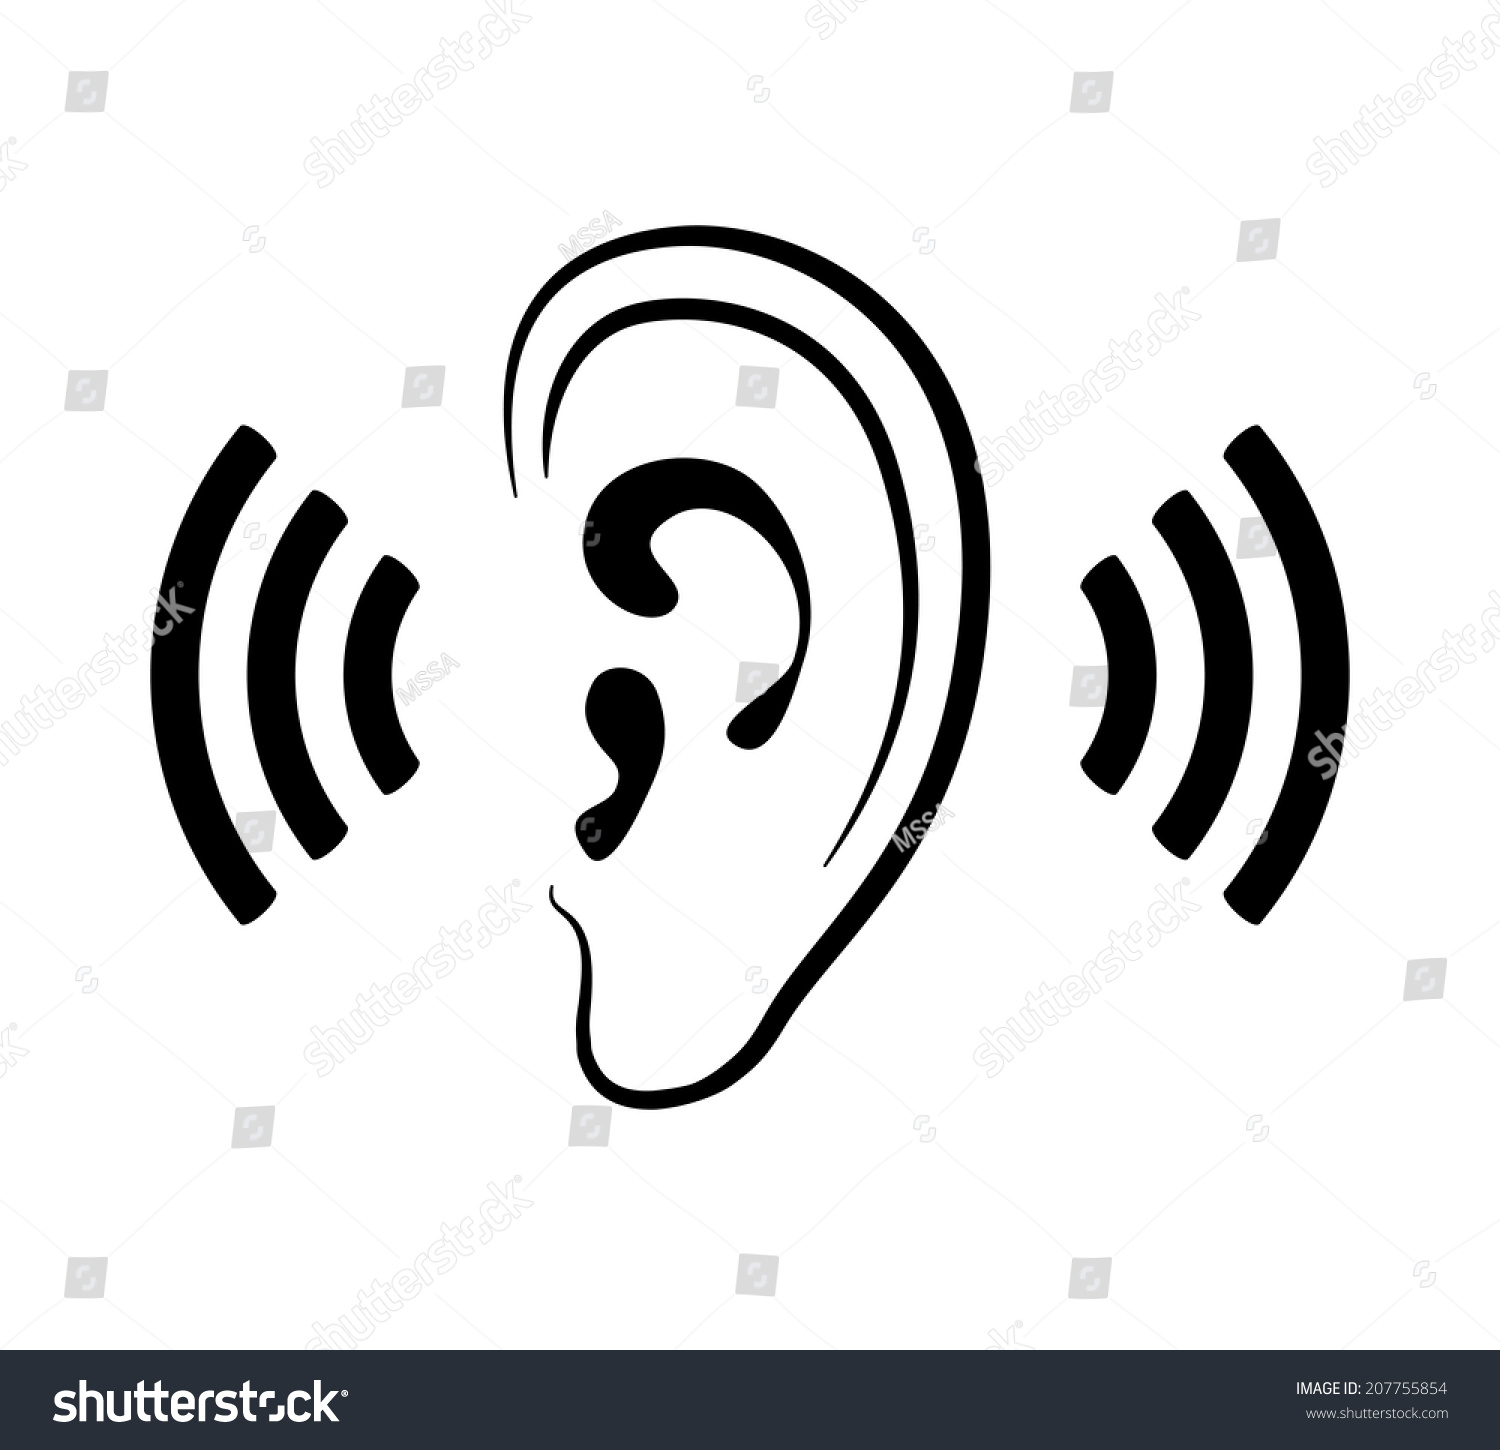 Sound Waves Clipart Vector ear icon, silhouette of ear and sound waves ...